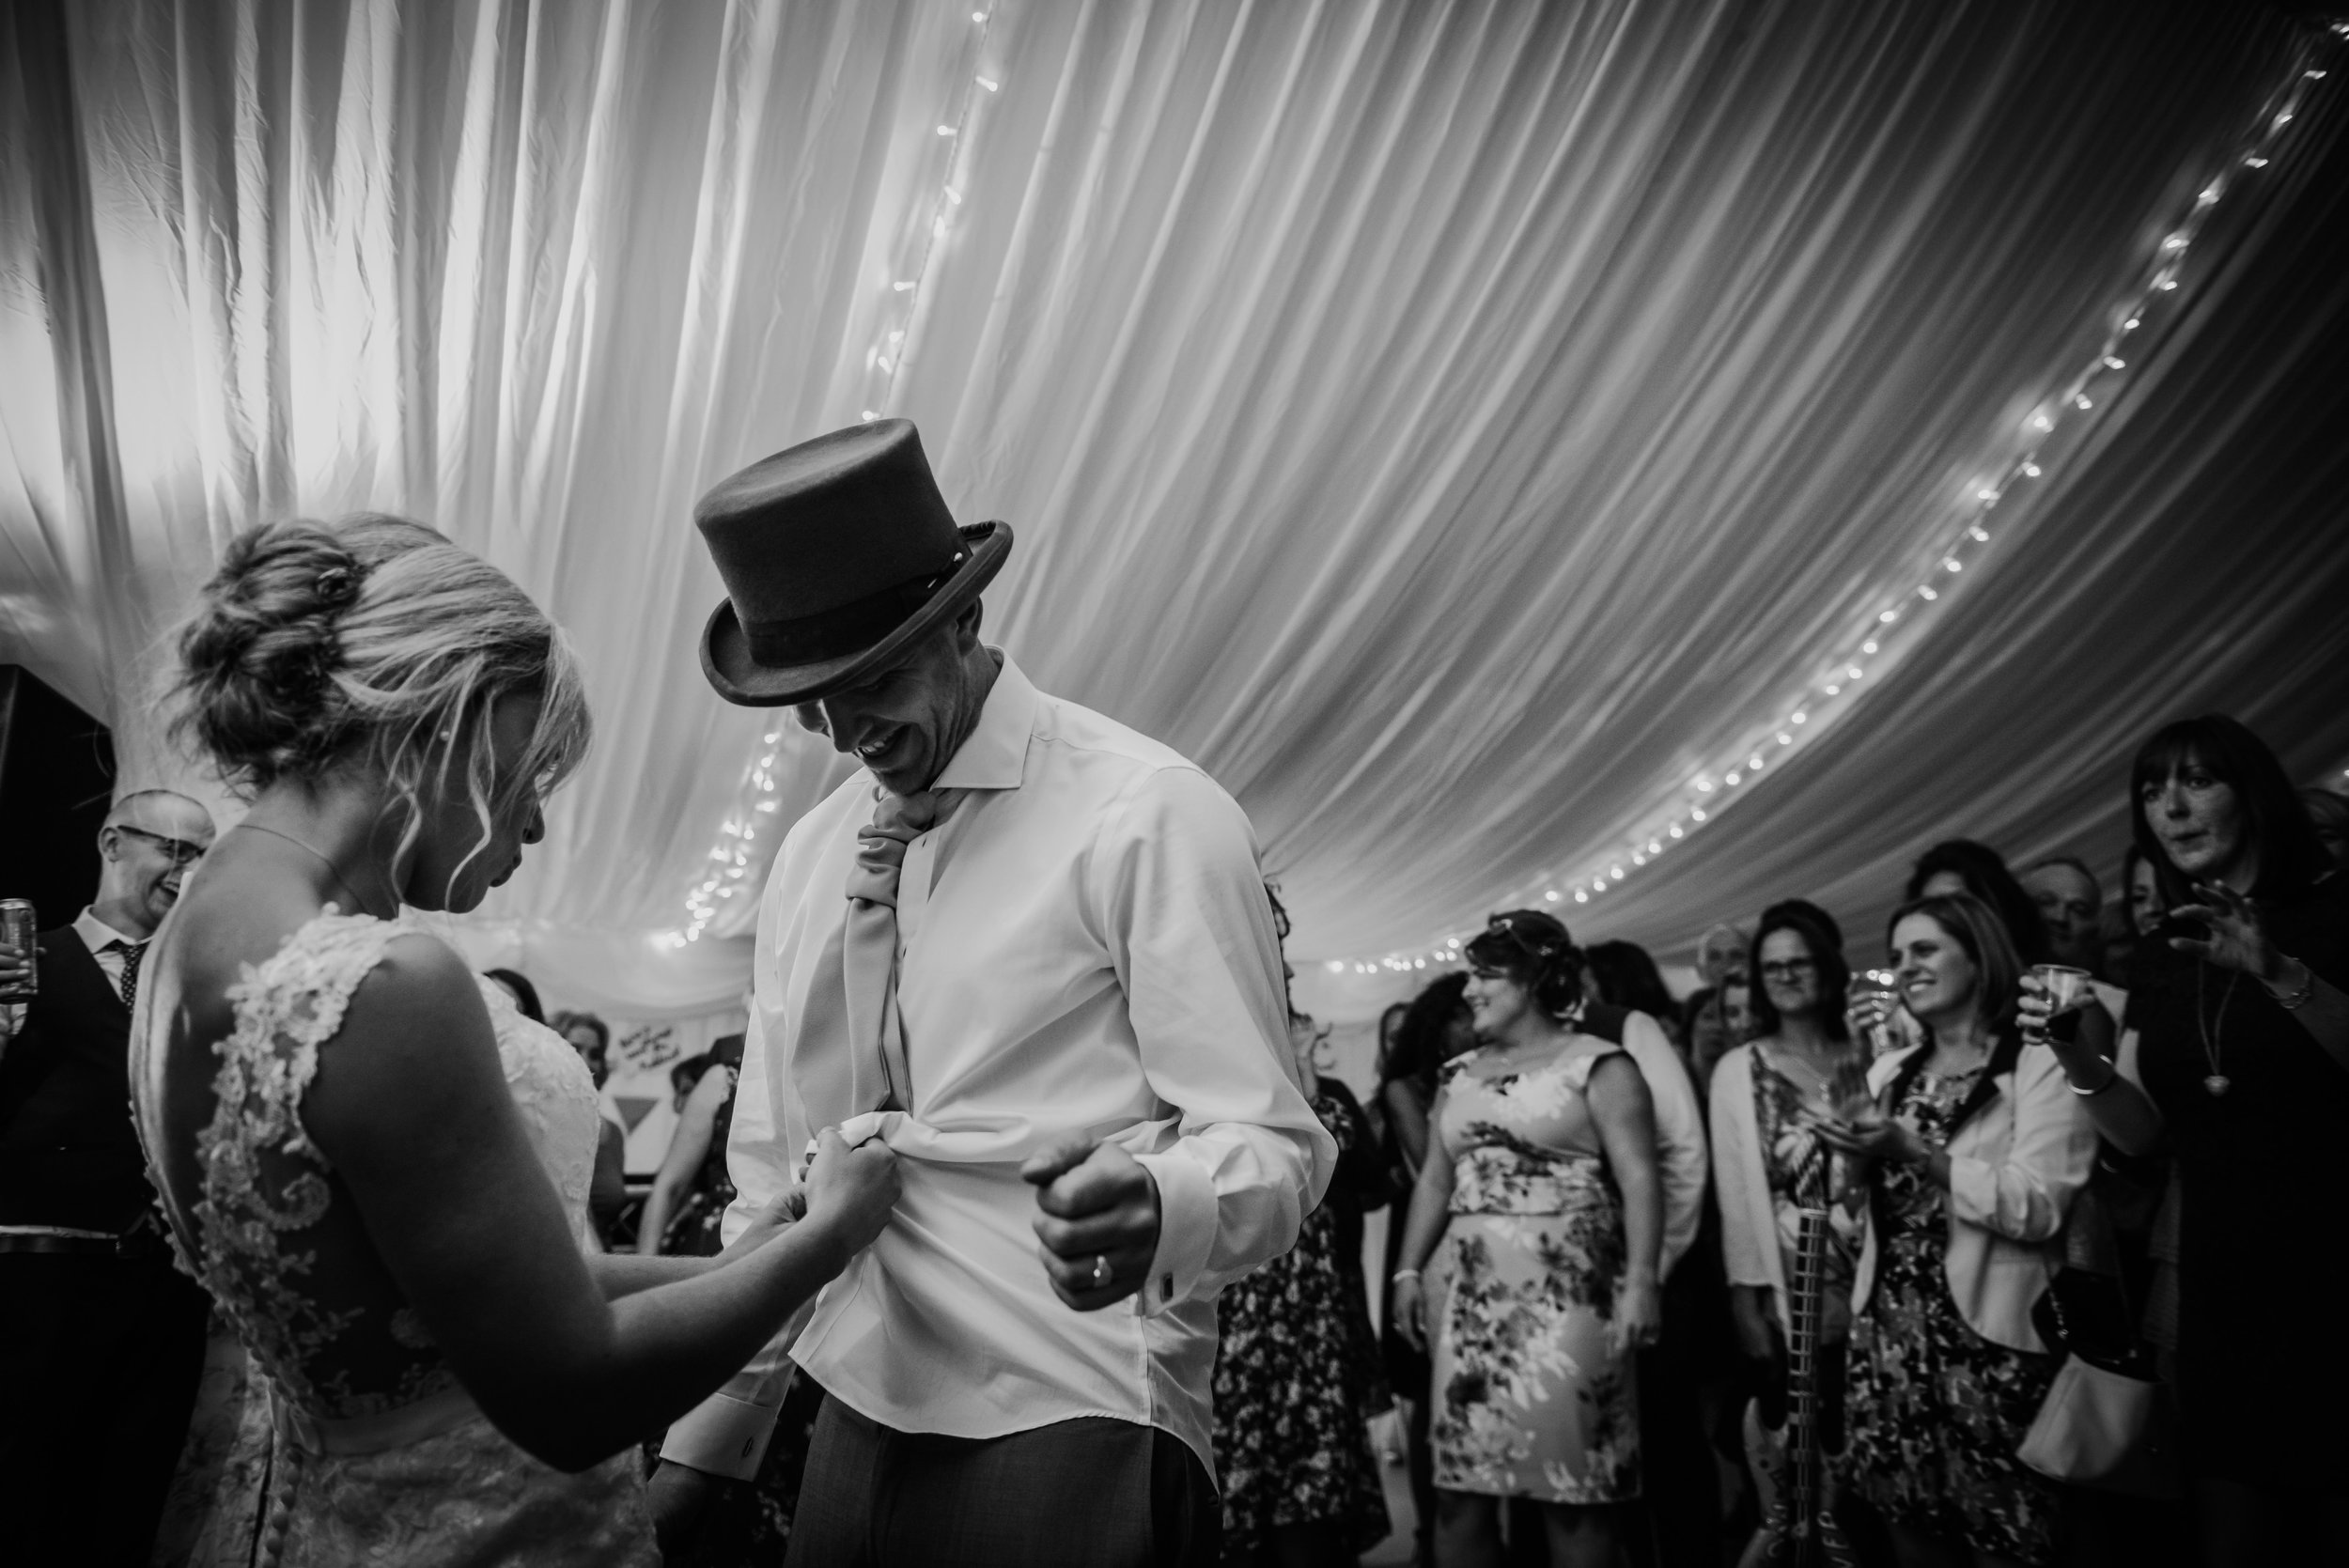 bw photo of the bride unbuttoning the grooms shirt